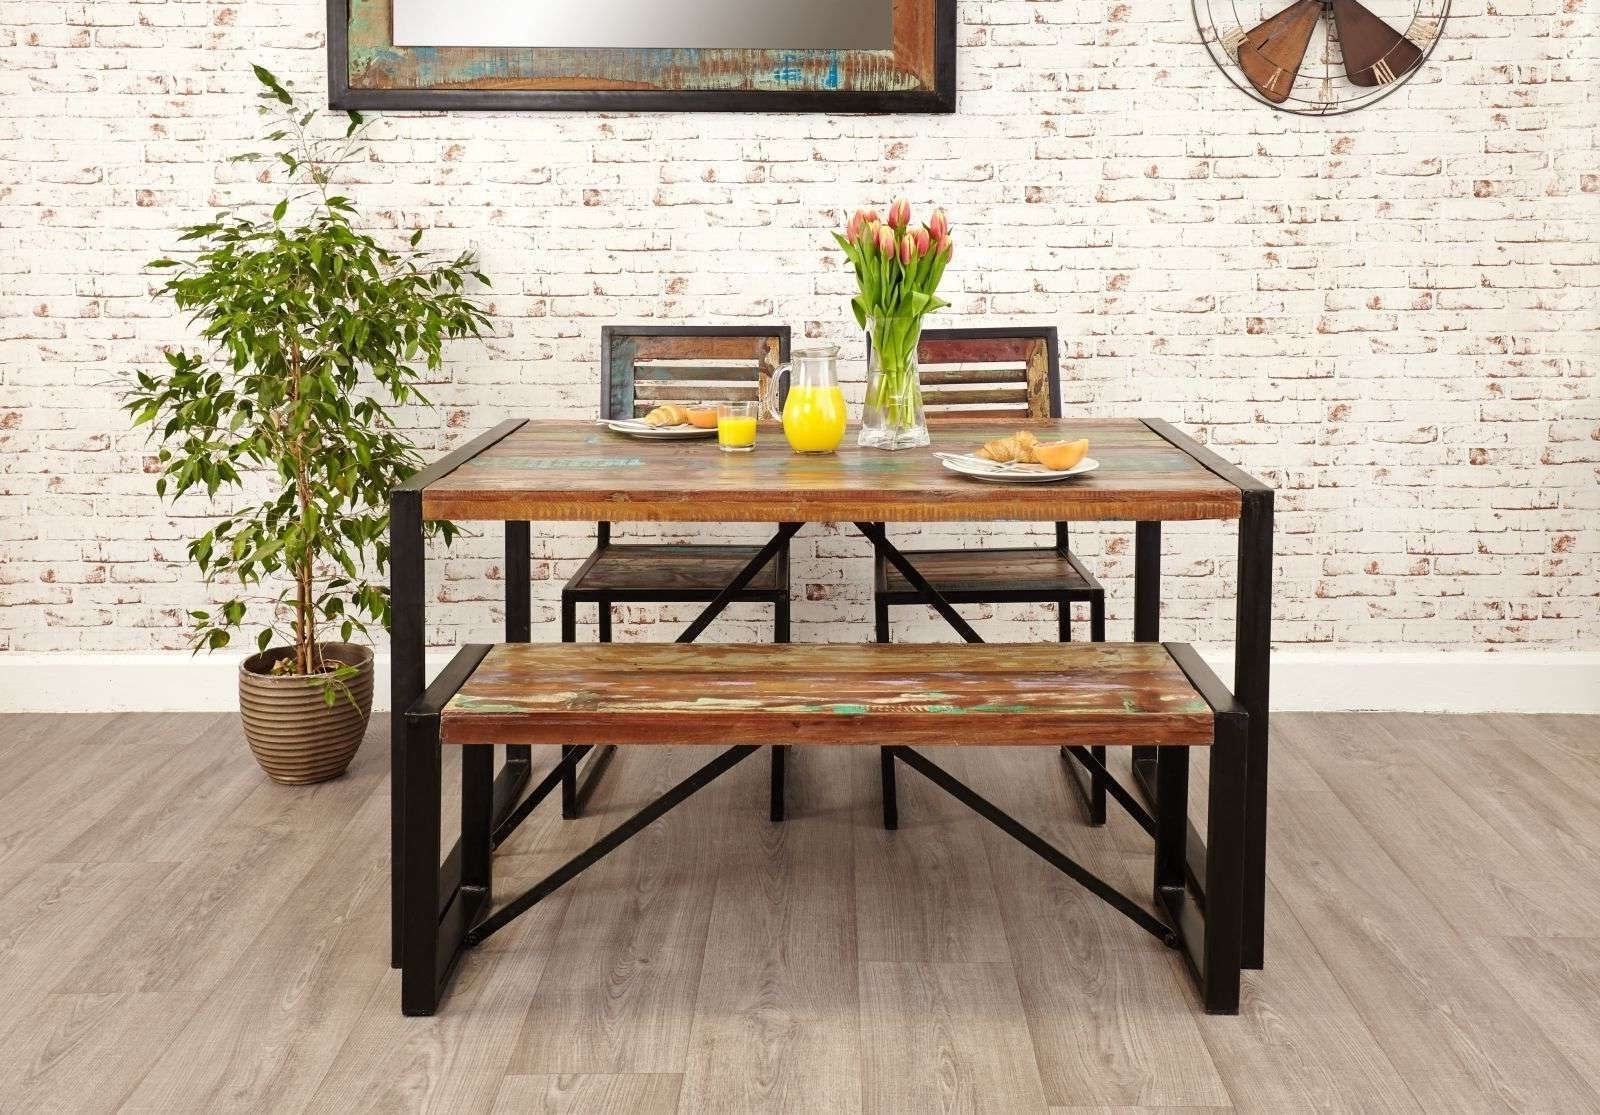 Agra Reclaimed Wood Furniture Dining Table, Two Chairs And Bench Set Pertaining To Well Known Small Dining Tables And Bench Sets (View 4 of 25)